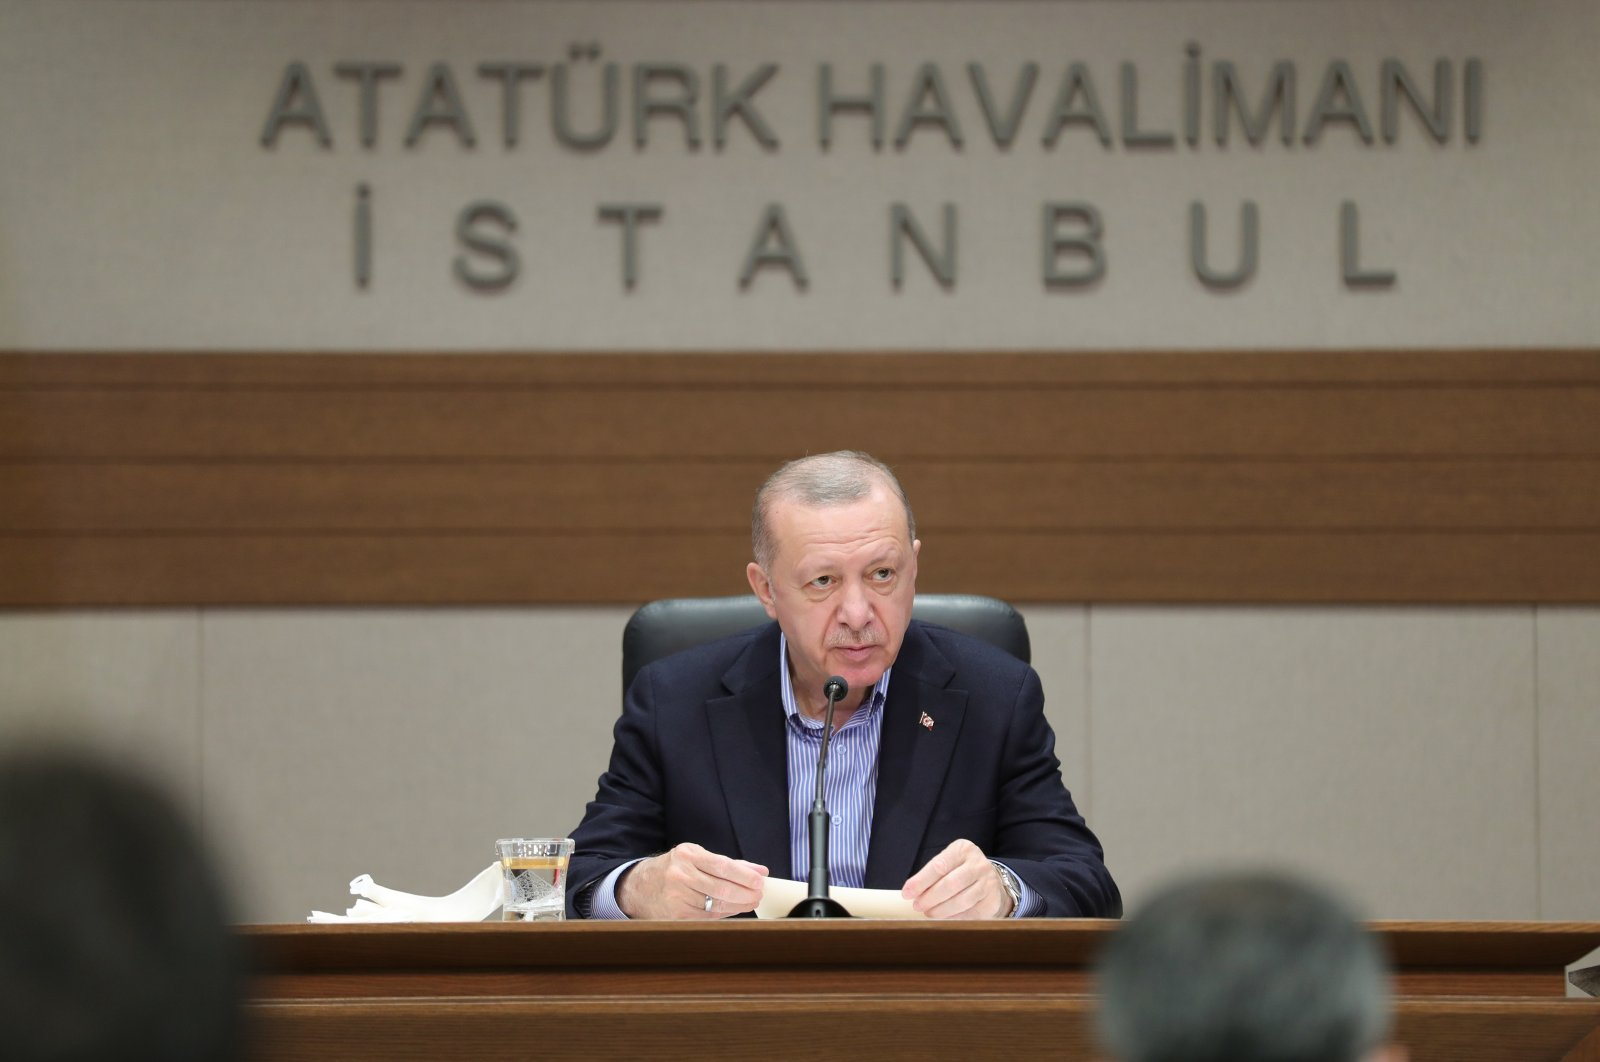 President Recep Tayyip Erdoğan speaks at a press conference before departing for the NATO summit in Brussels, Istanbul, Turkey, June 13, 2021. (AA Photo)